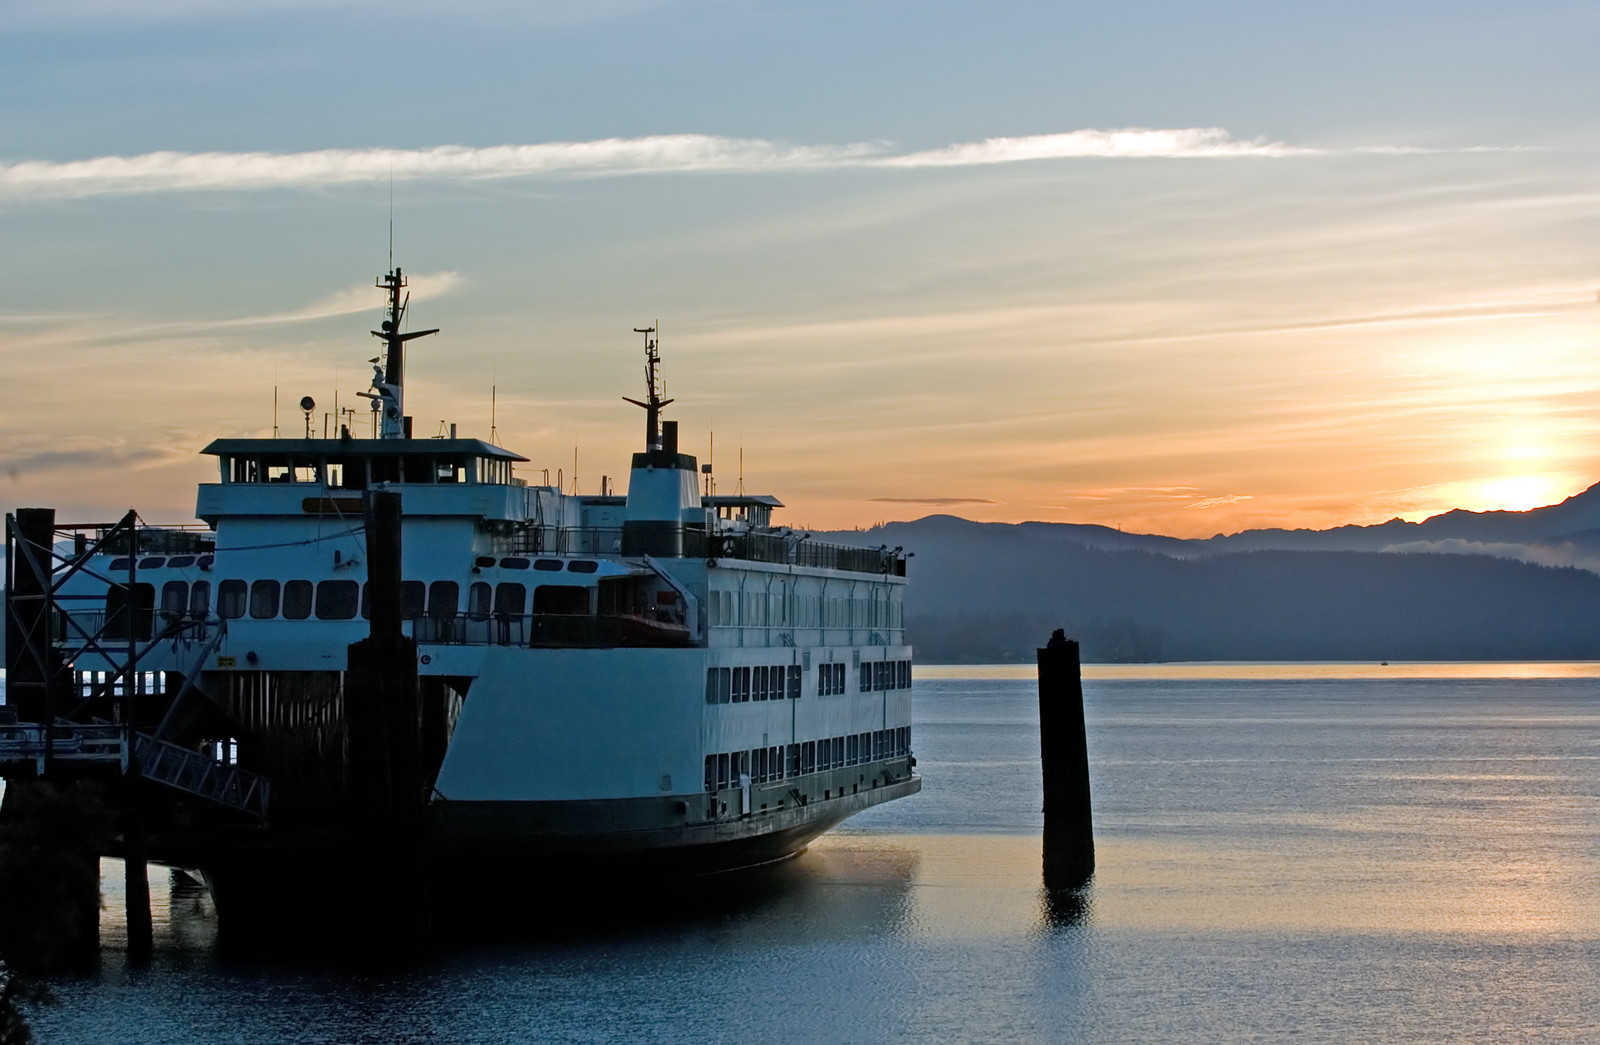 Large Ferry on the bay in Anacortes at sunset with the hills in the background and sunset reflecting off the water